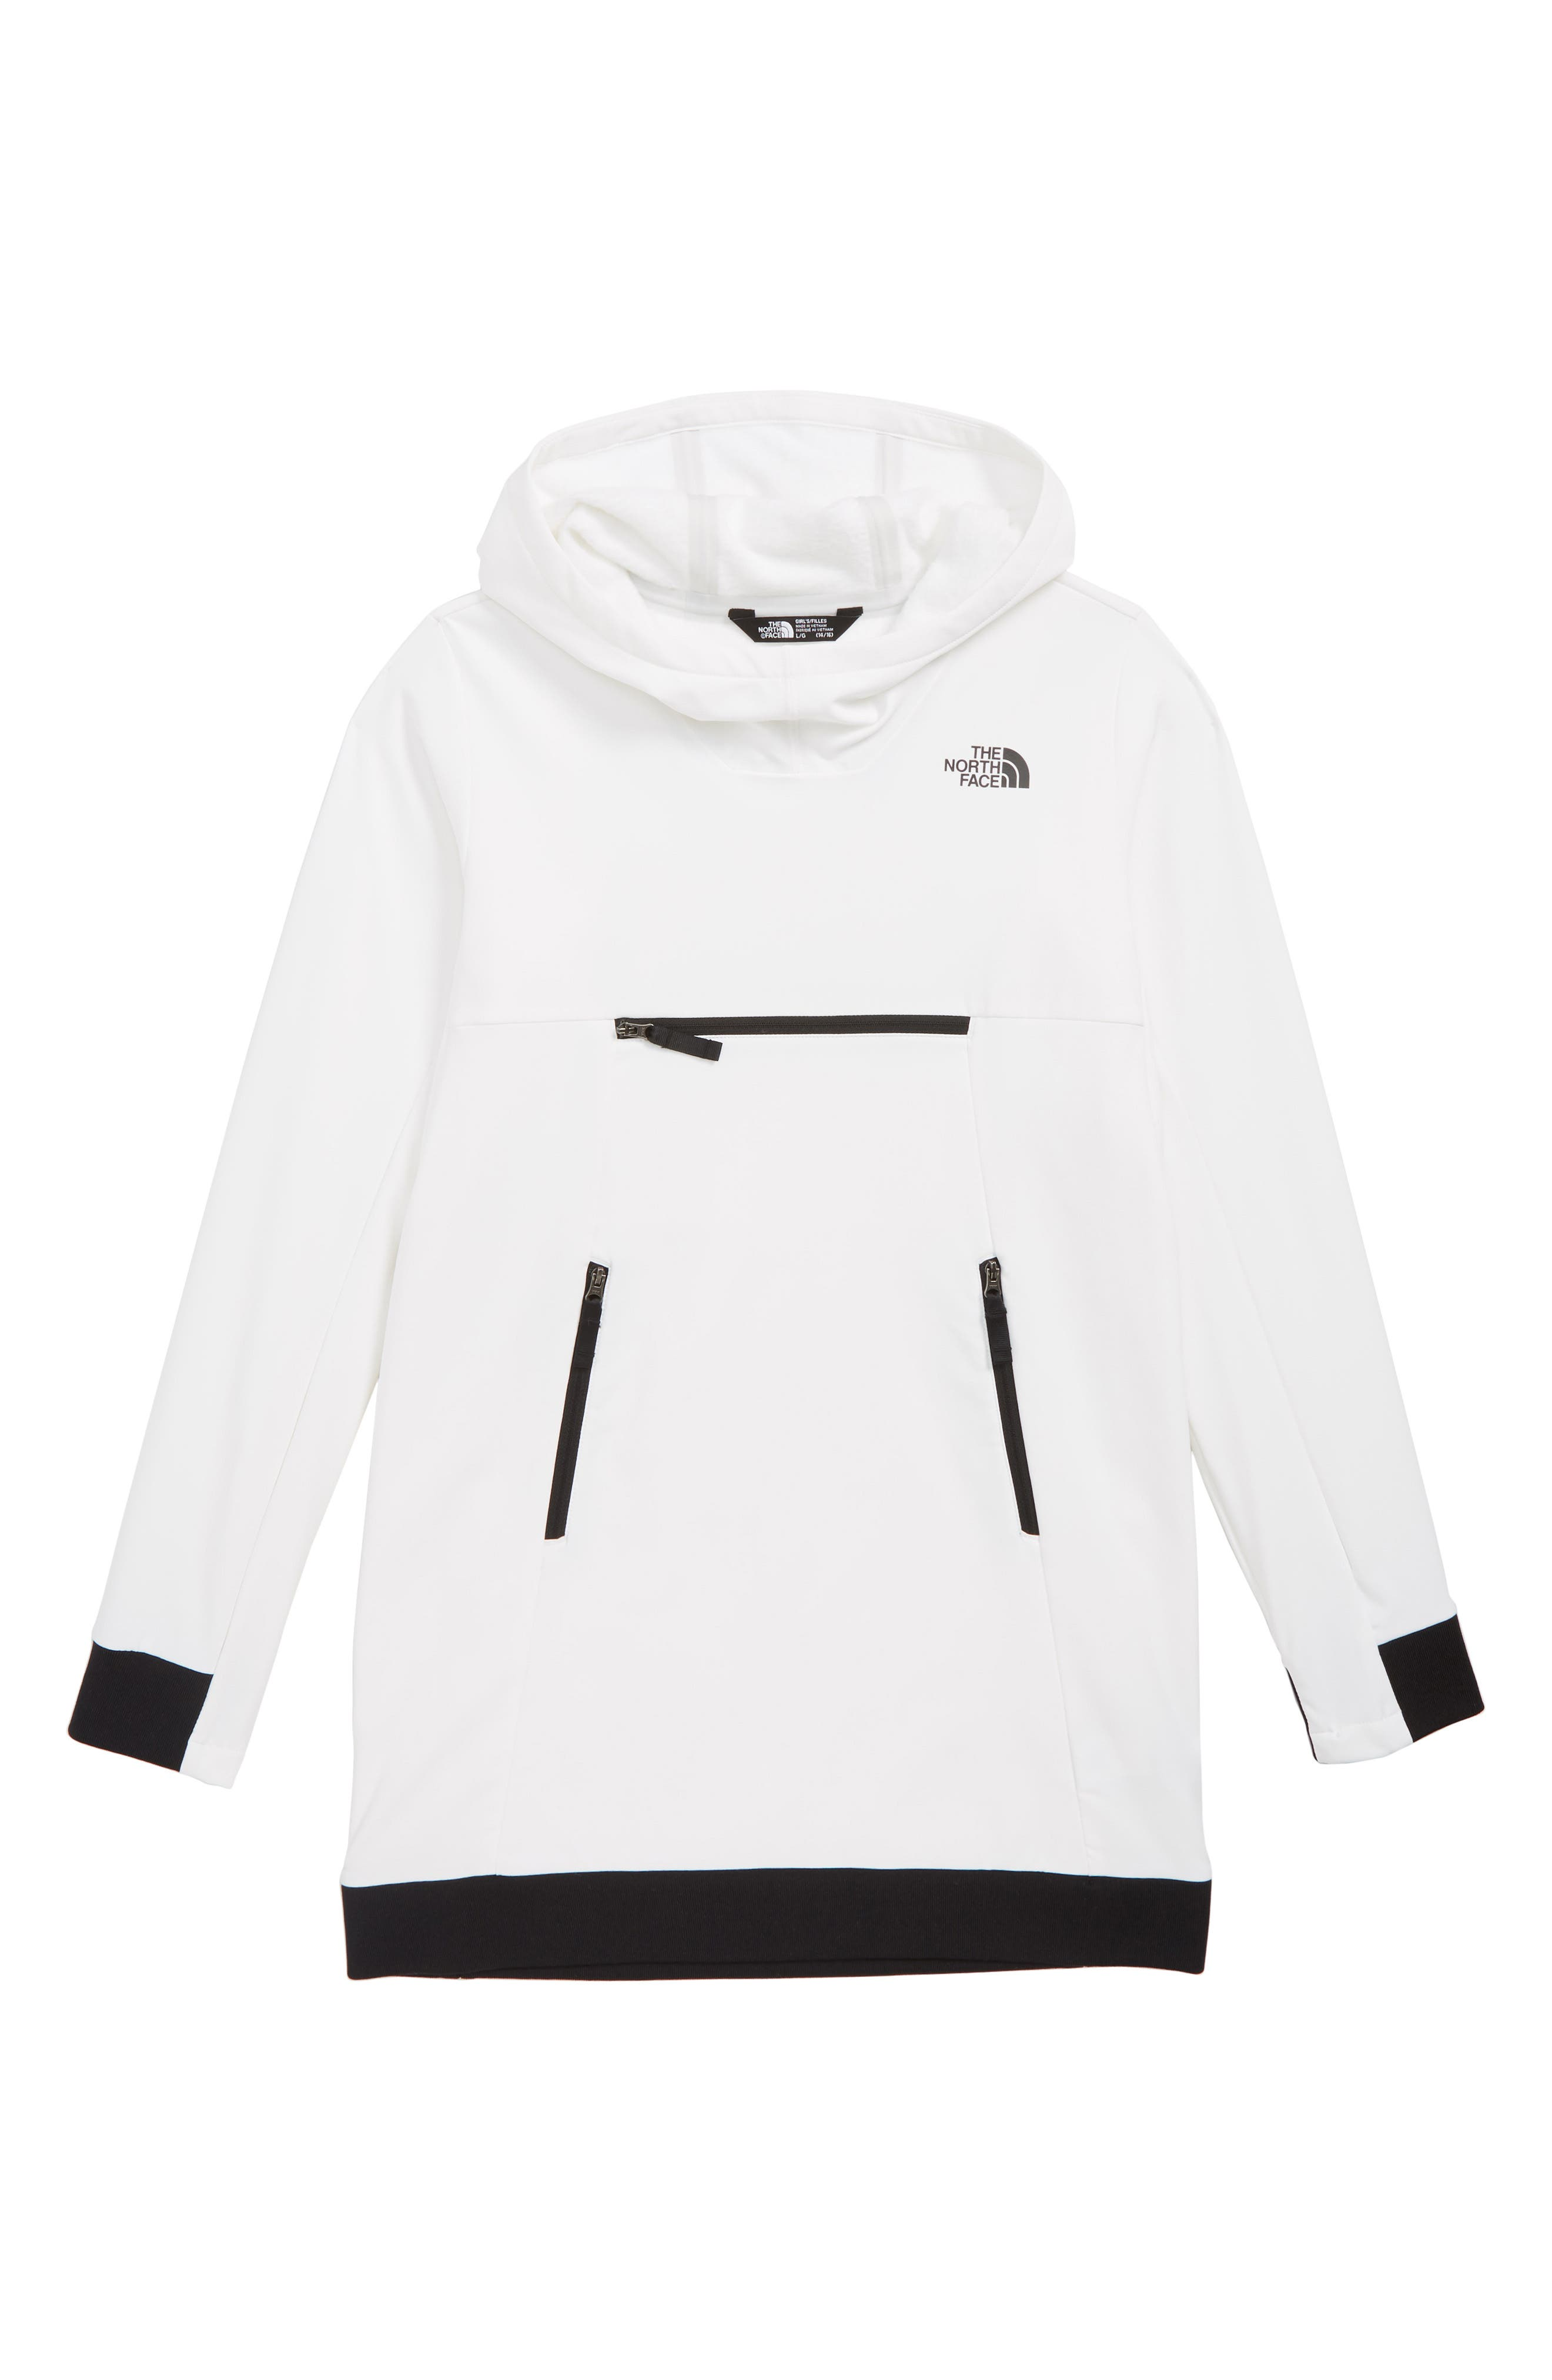 THE NORTH FACE Tekno Pullover Hoodie, Main, color, TNF WHITE